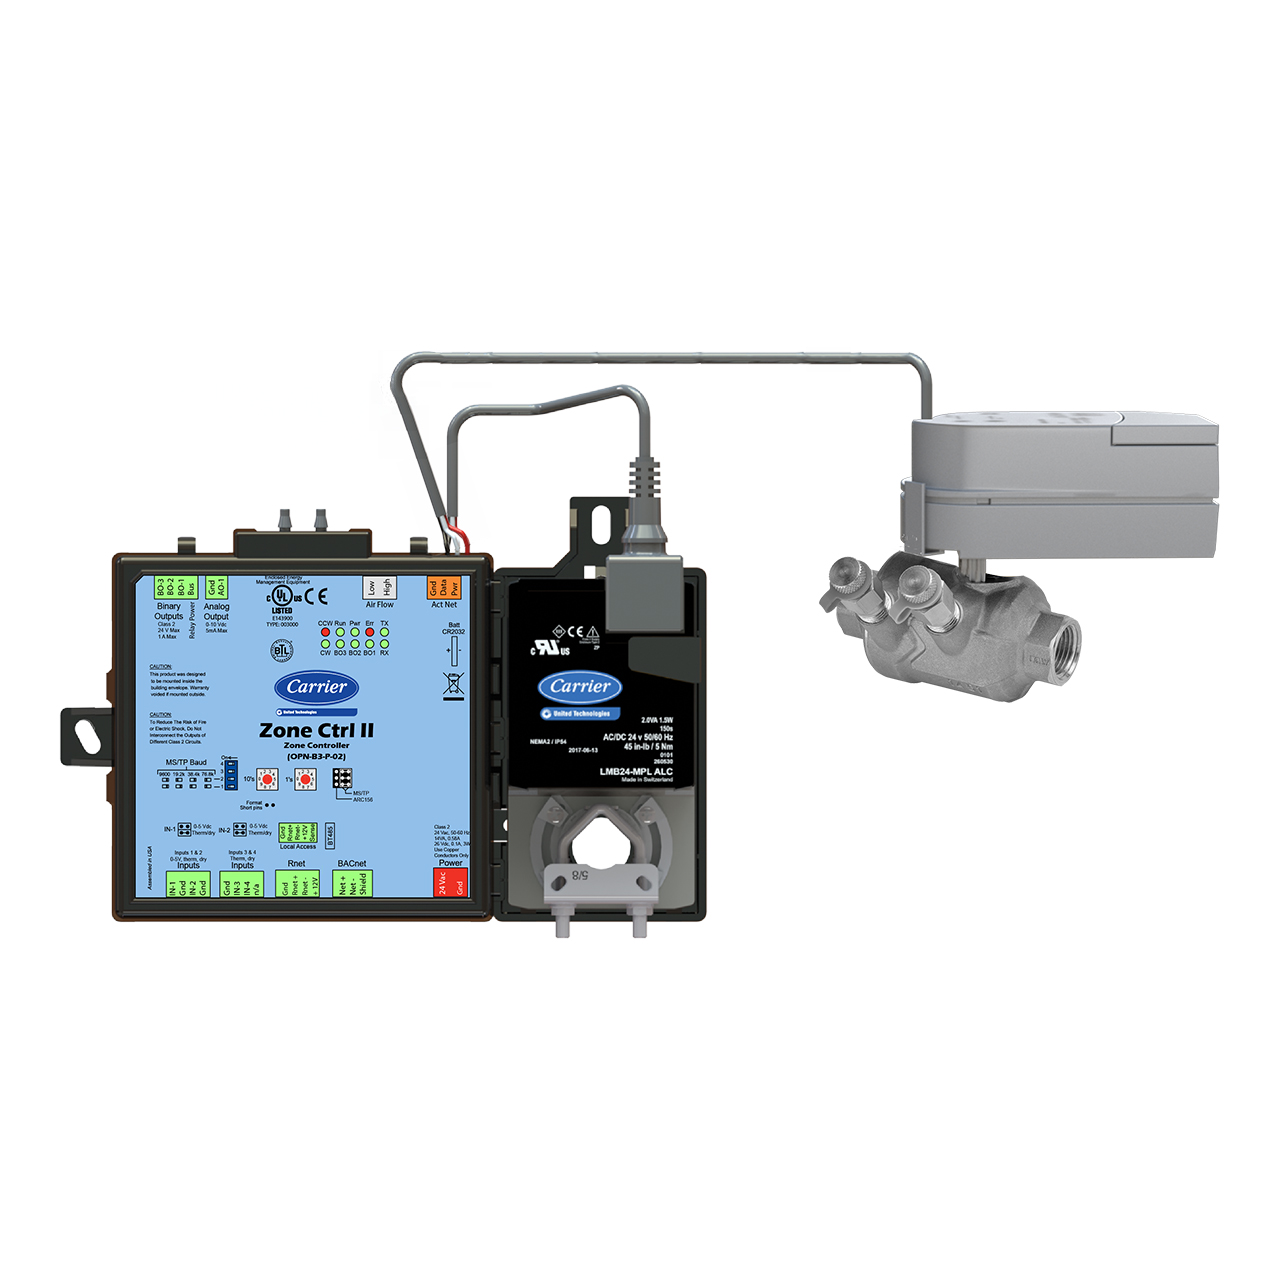 carrier-zone-control-II-smart-valve_A